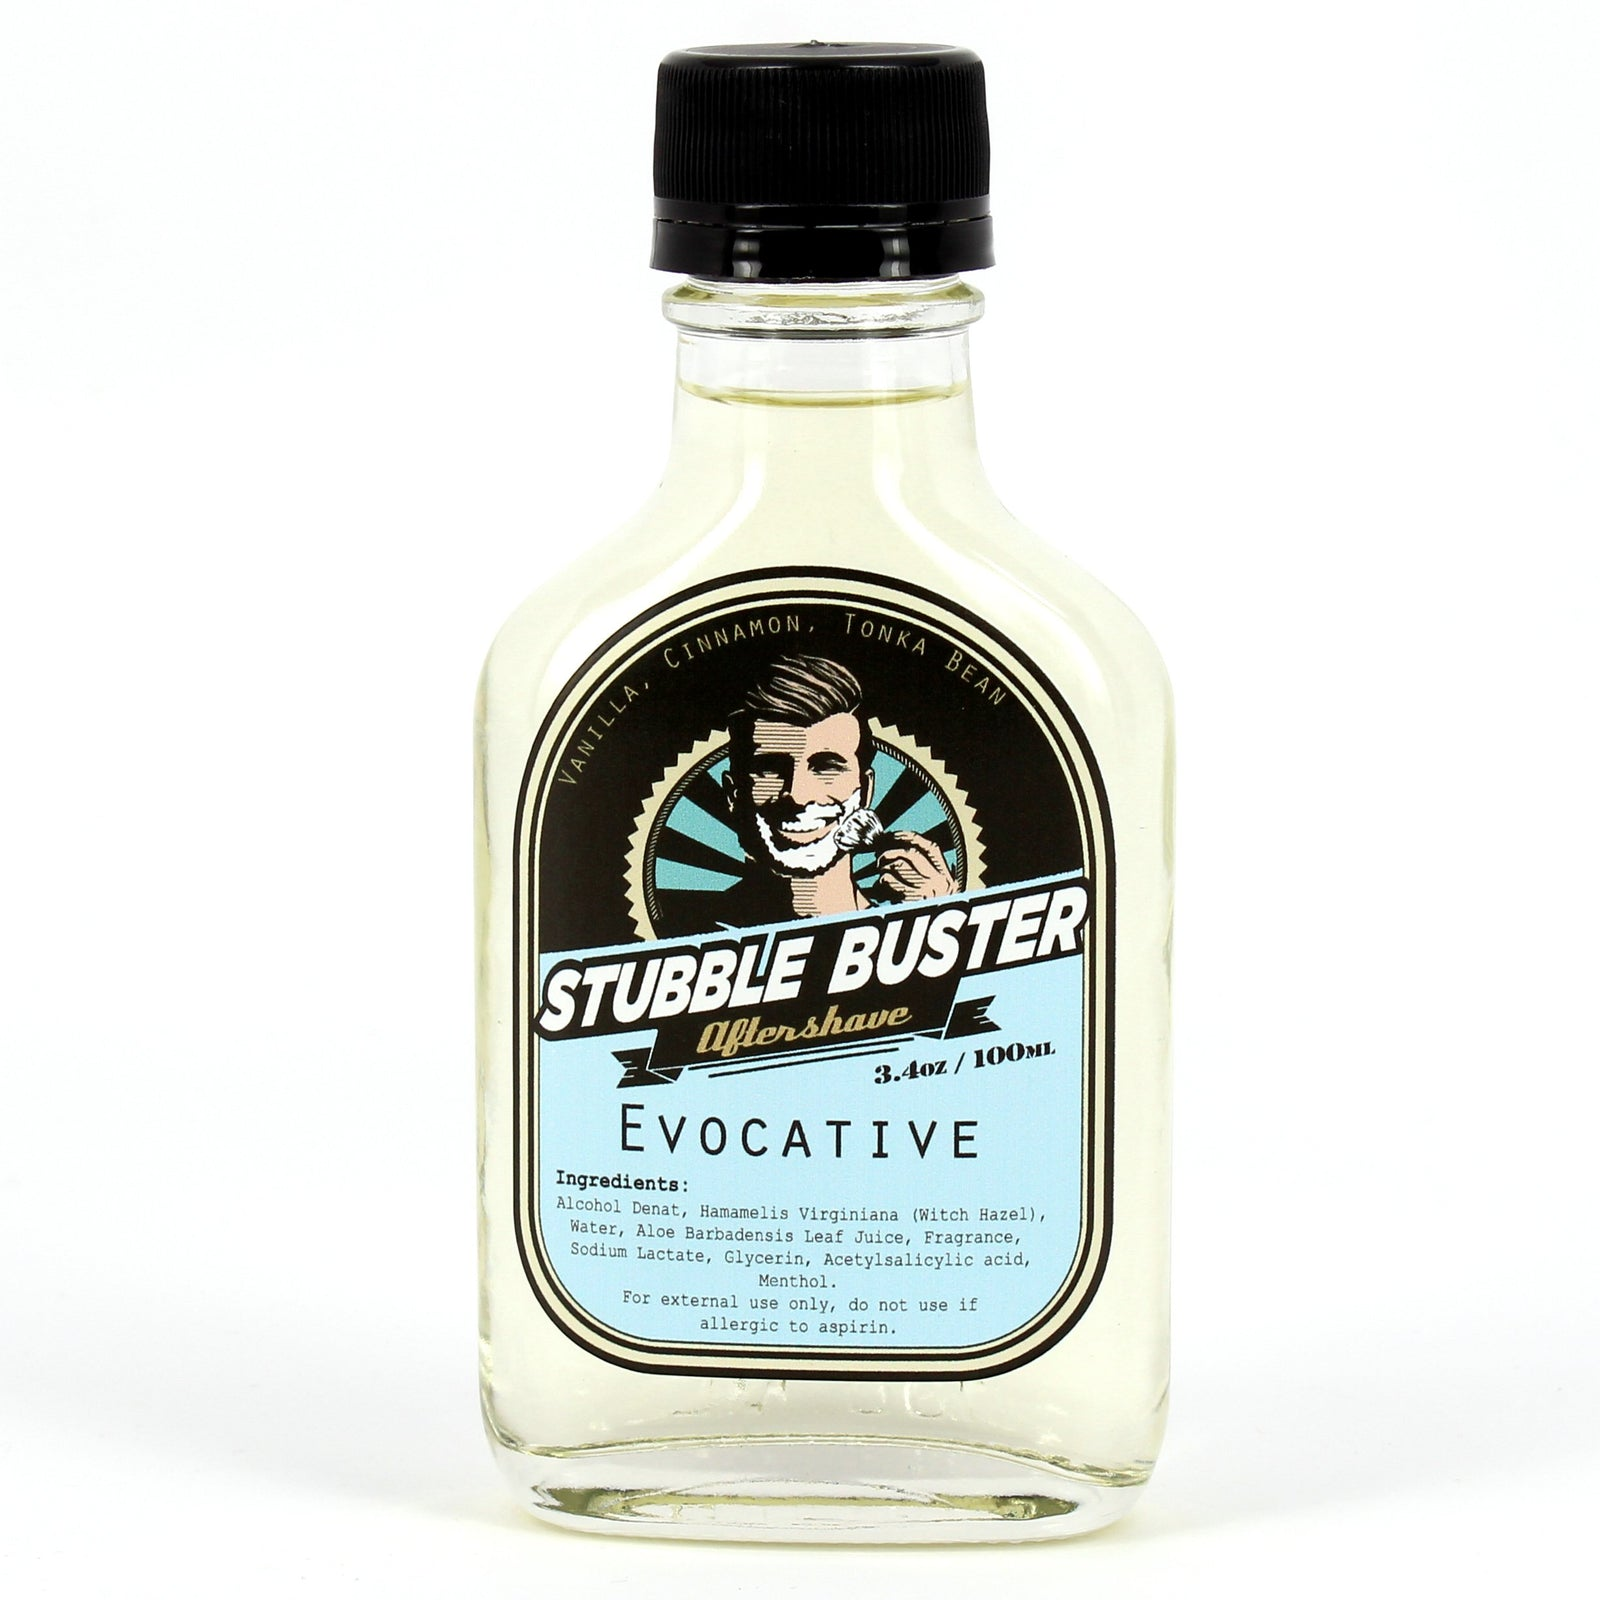 Stubble Buster - Evocative - Handmade Aftershave Splash